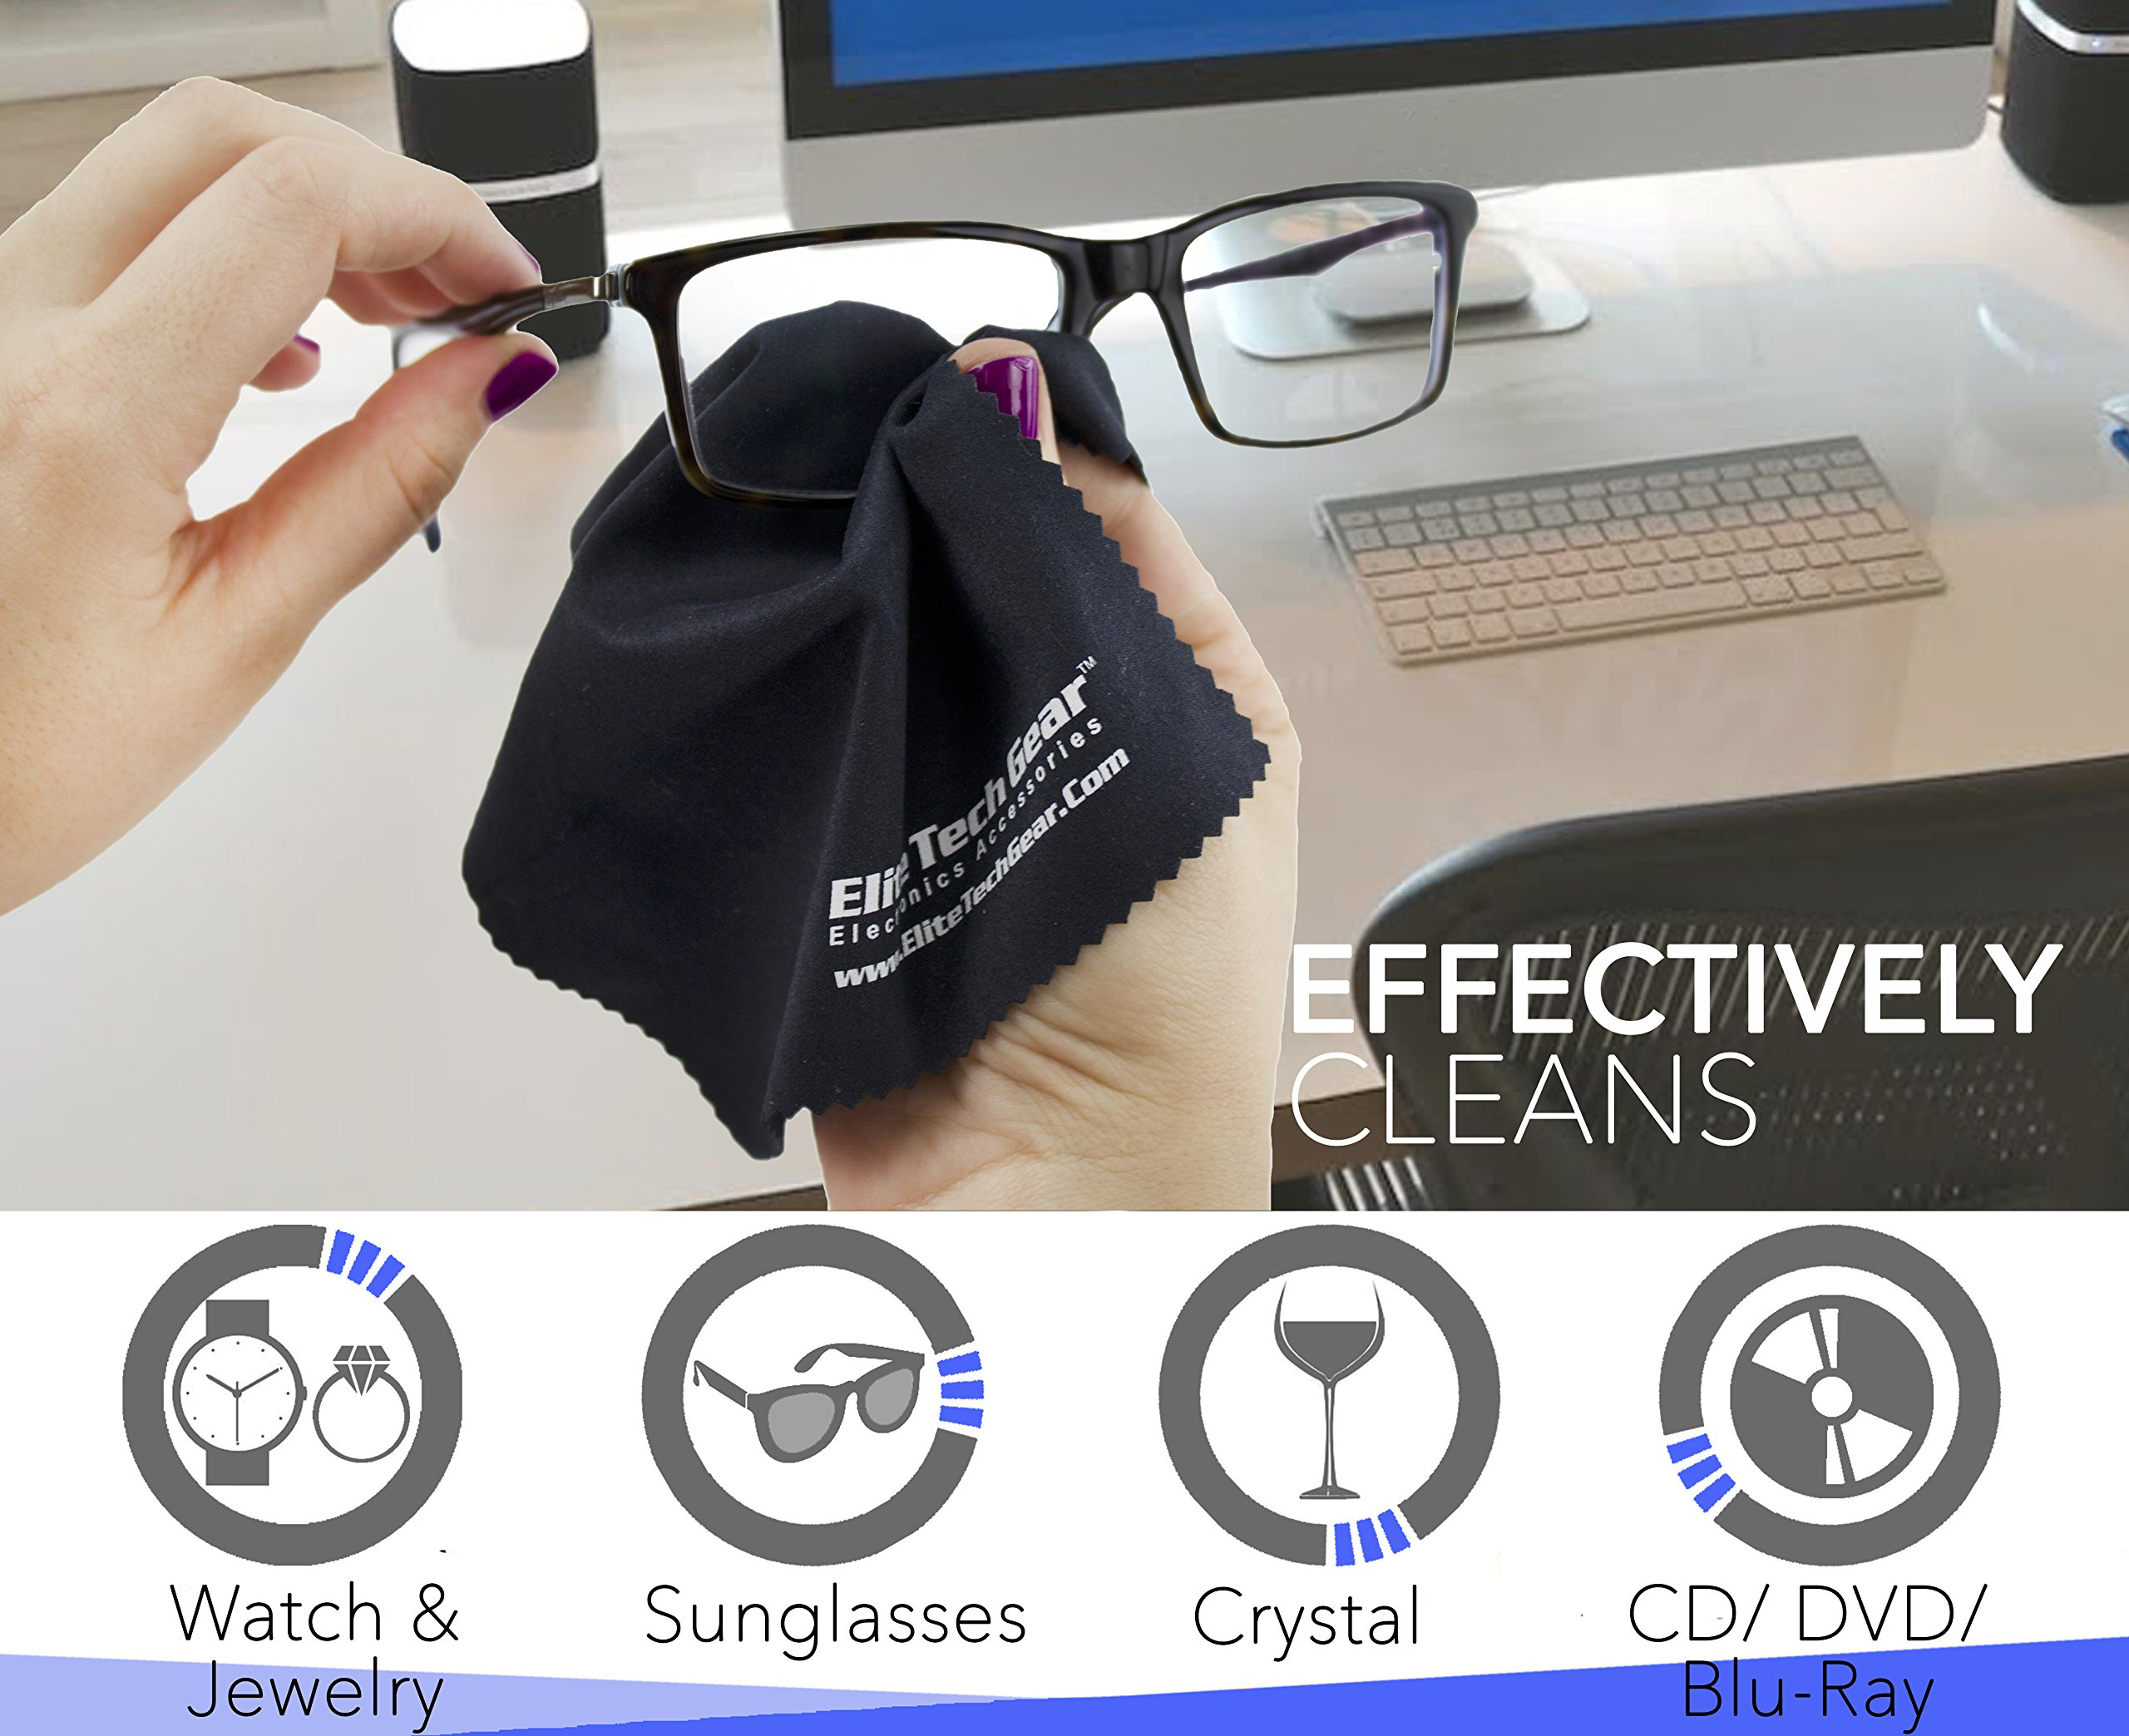 "The Most Amazing Microfiber Cleaning Cloths (13 Pack). Perfect For Cleaning All Electronic Device Screens, Eyeglasses, Tablets & Other Delicate Surfaces (12 Large 6''x7"" & 1 Oversized 12''x12"") by Elite Tech Gear (Image #3)"